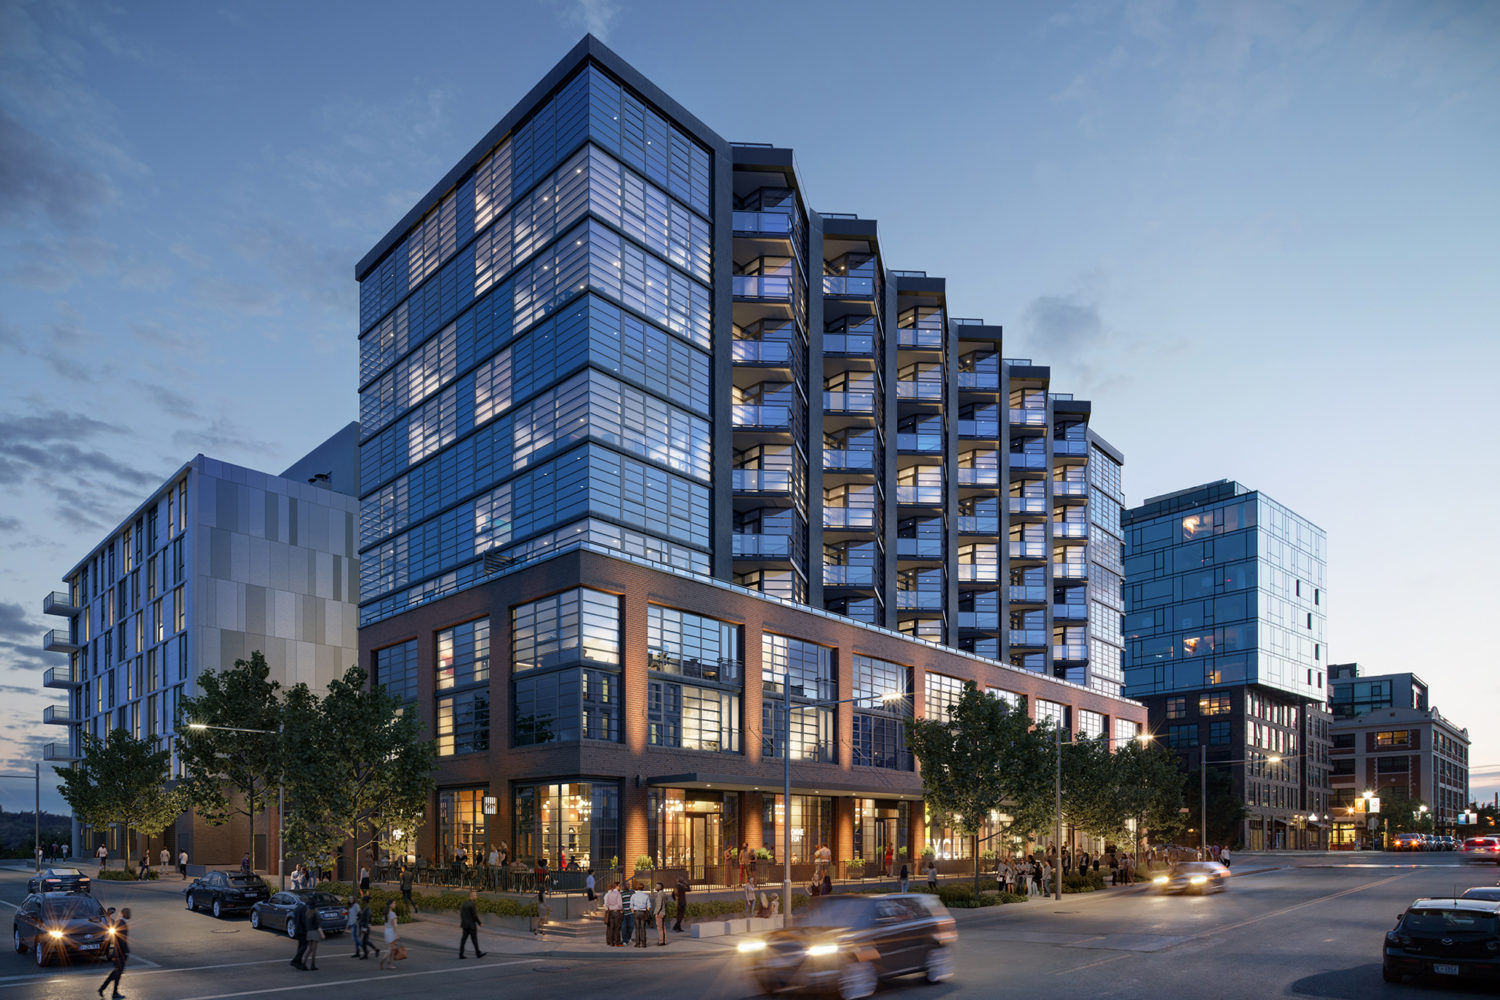 Your First Chance to Own at The Yards is Finally Here